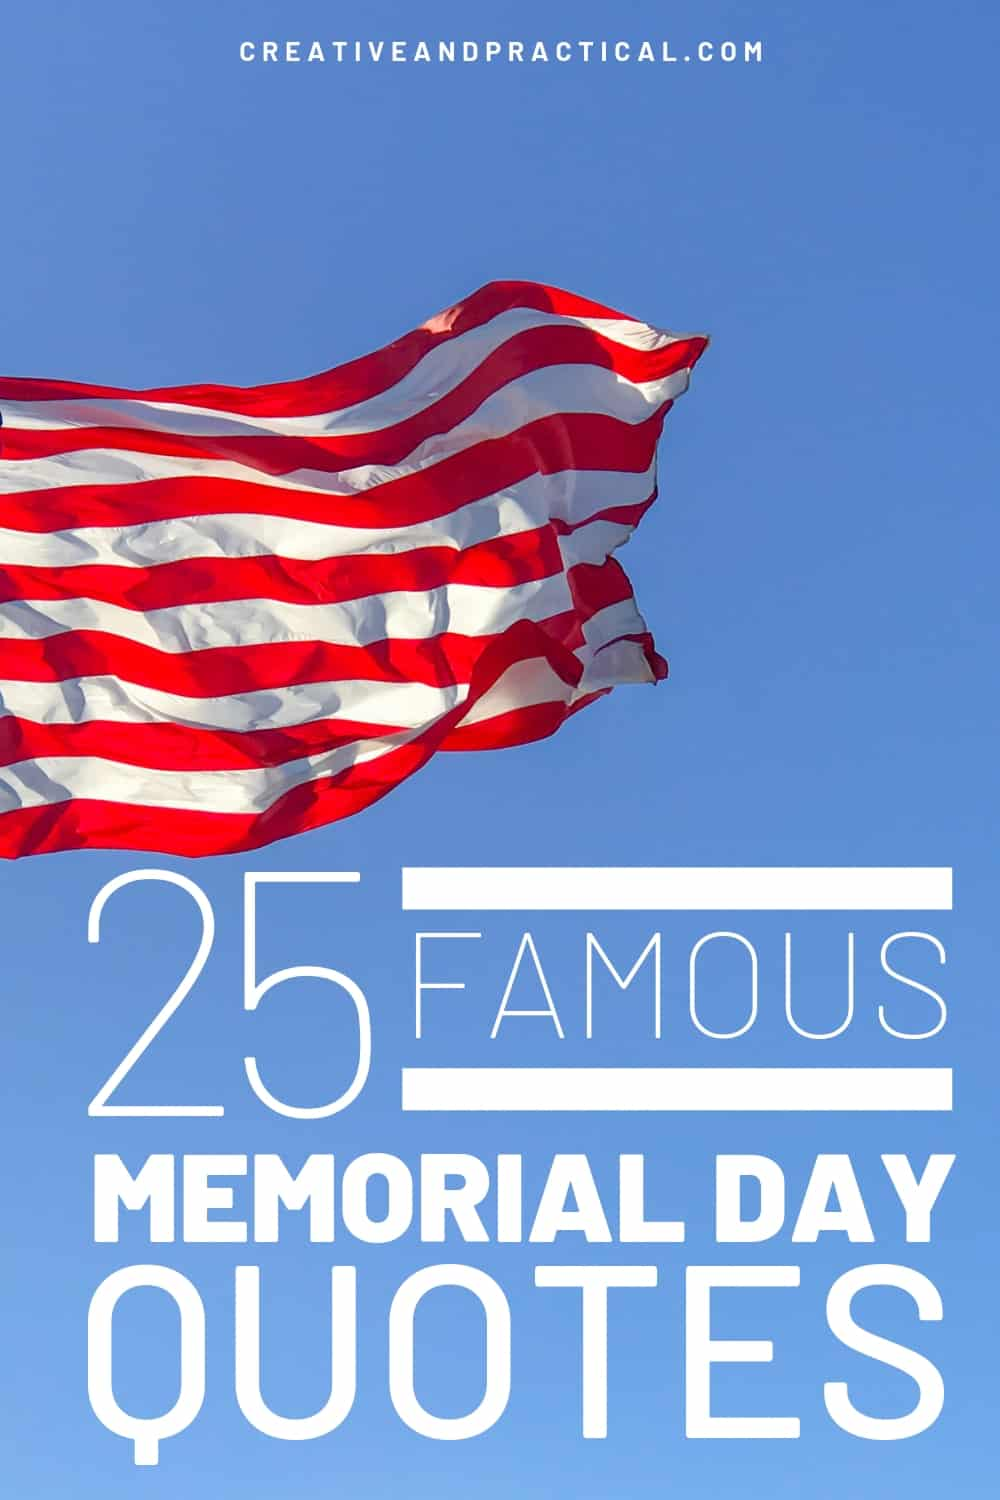 25 Famous Memorial Day Quotes